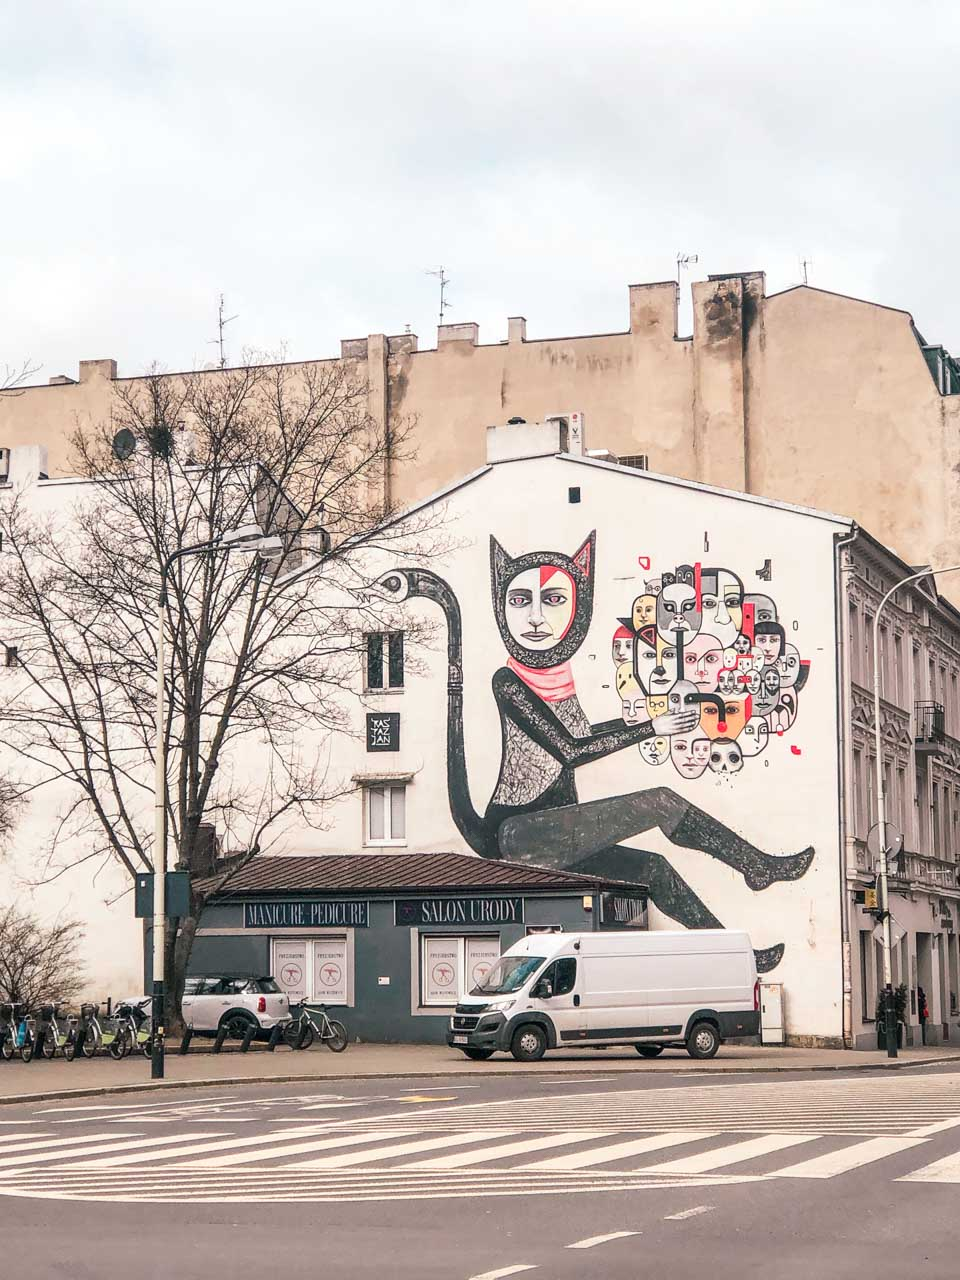 Cat lady mural in Łódź, Poland